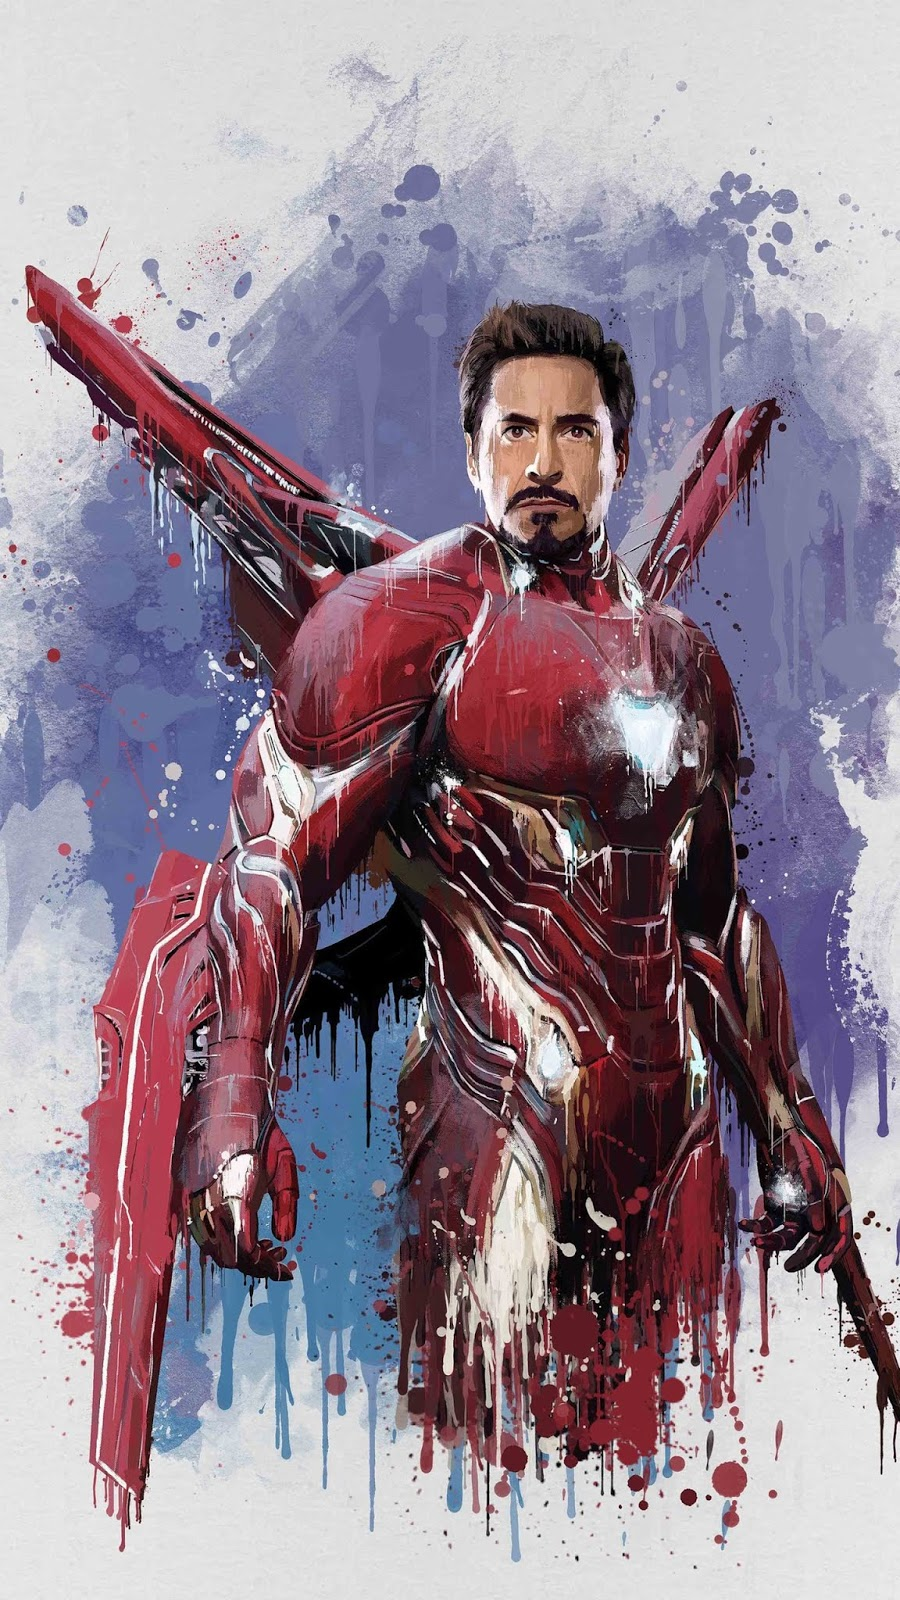 Free Download Iron Man Hd Wallpapers From Infinity War